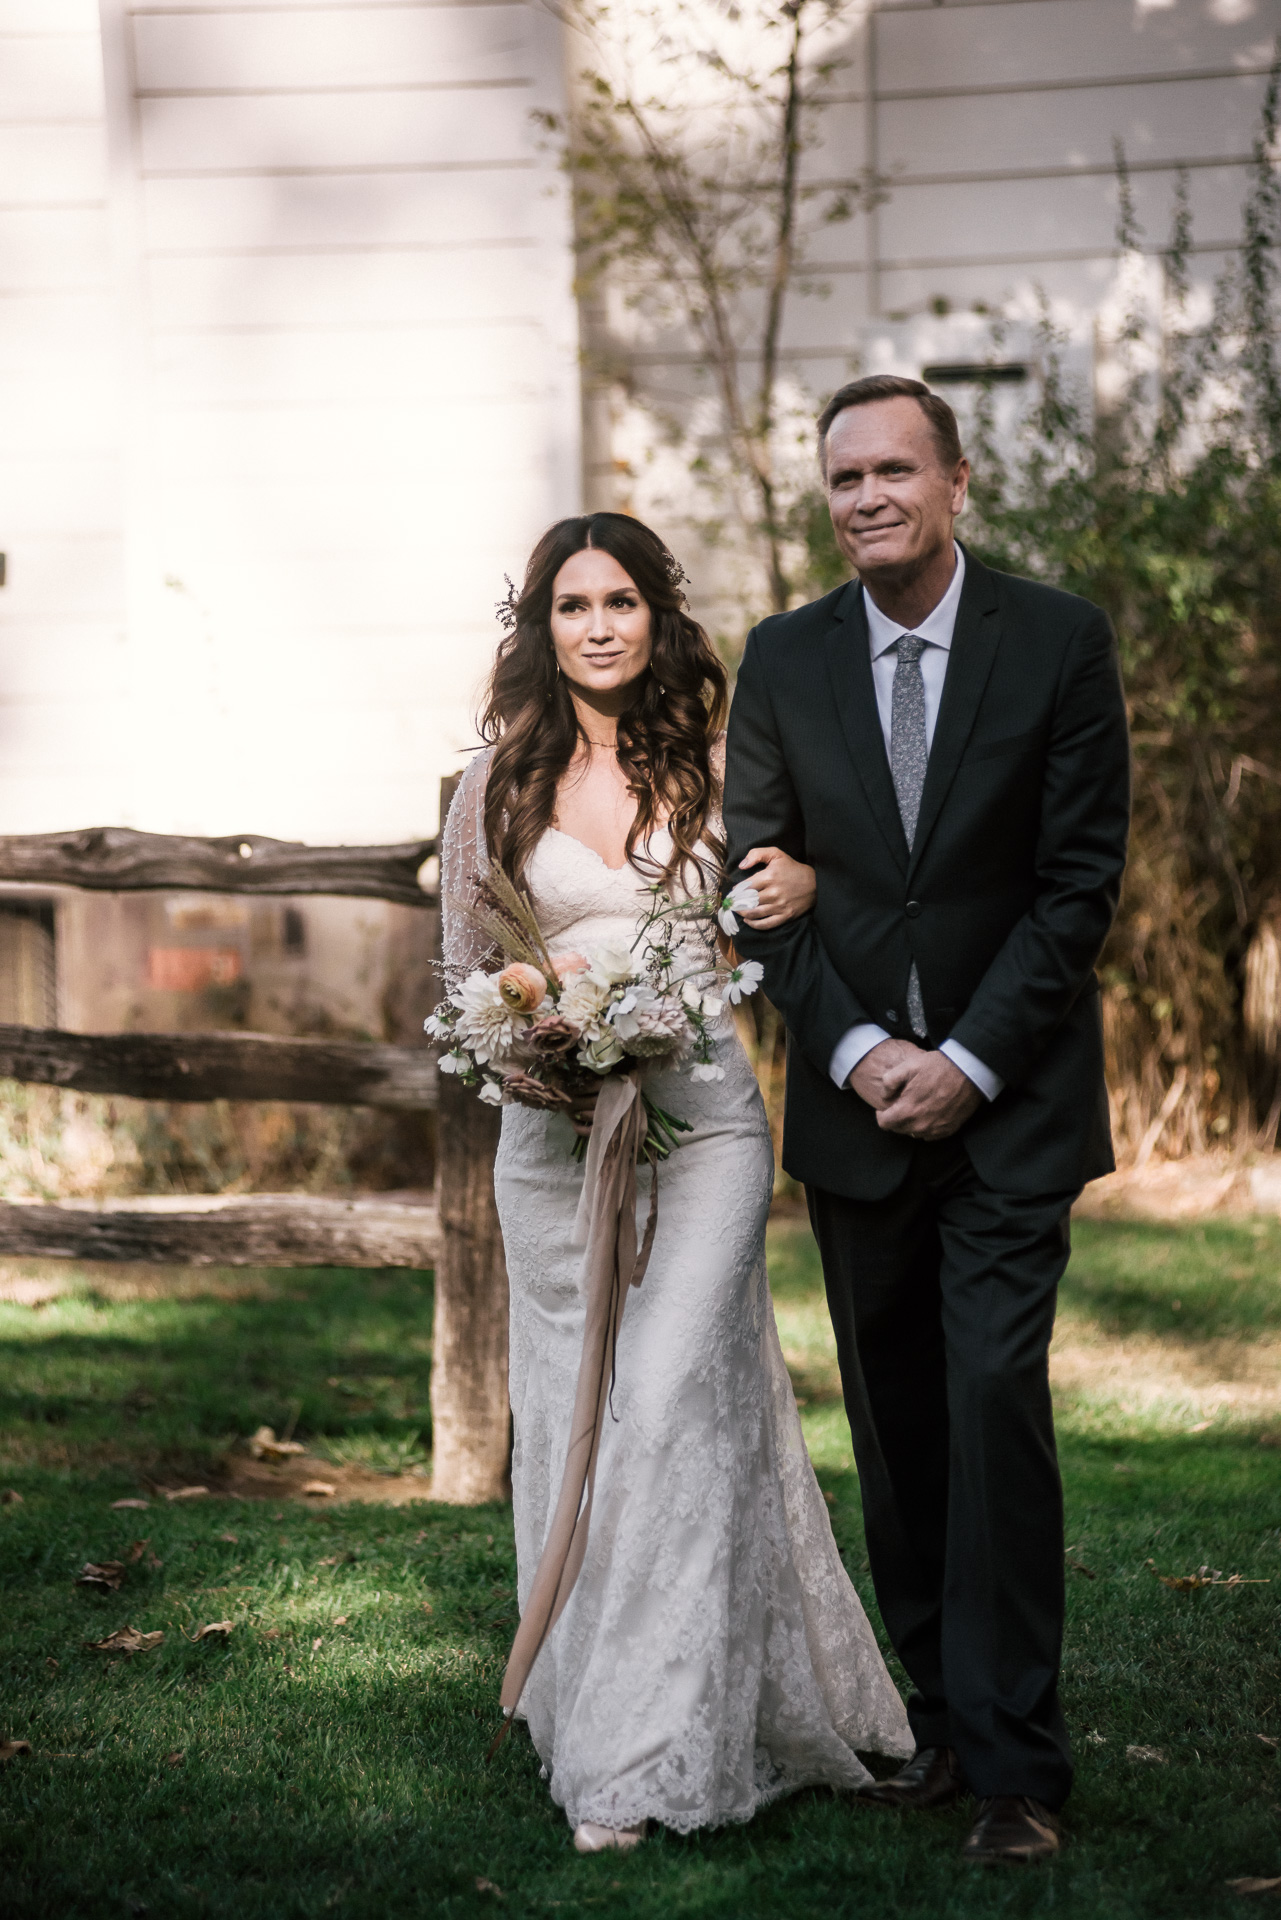 father walks bride down the aisle shot by wedding photographer at the charming St. George Hotel in Volcano California